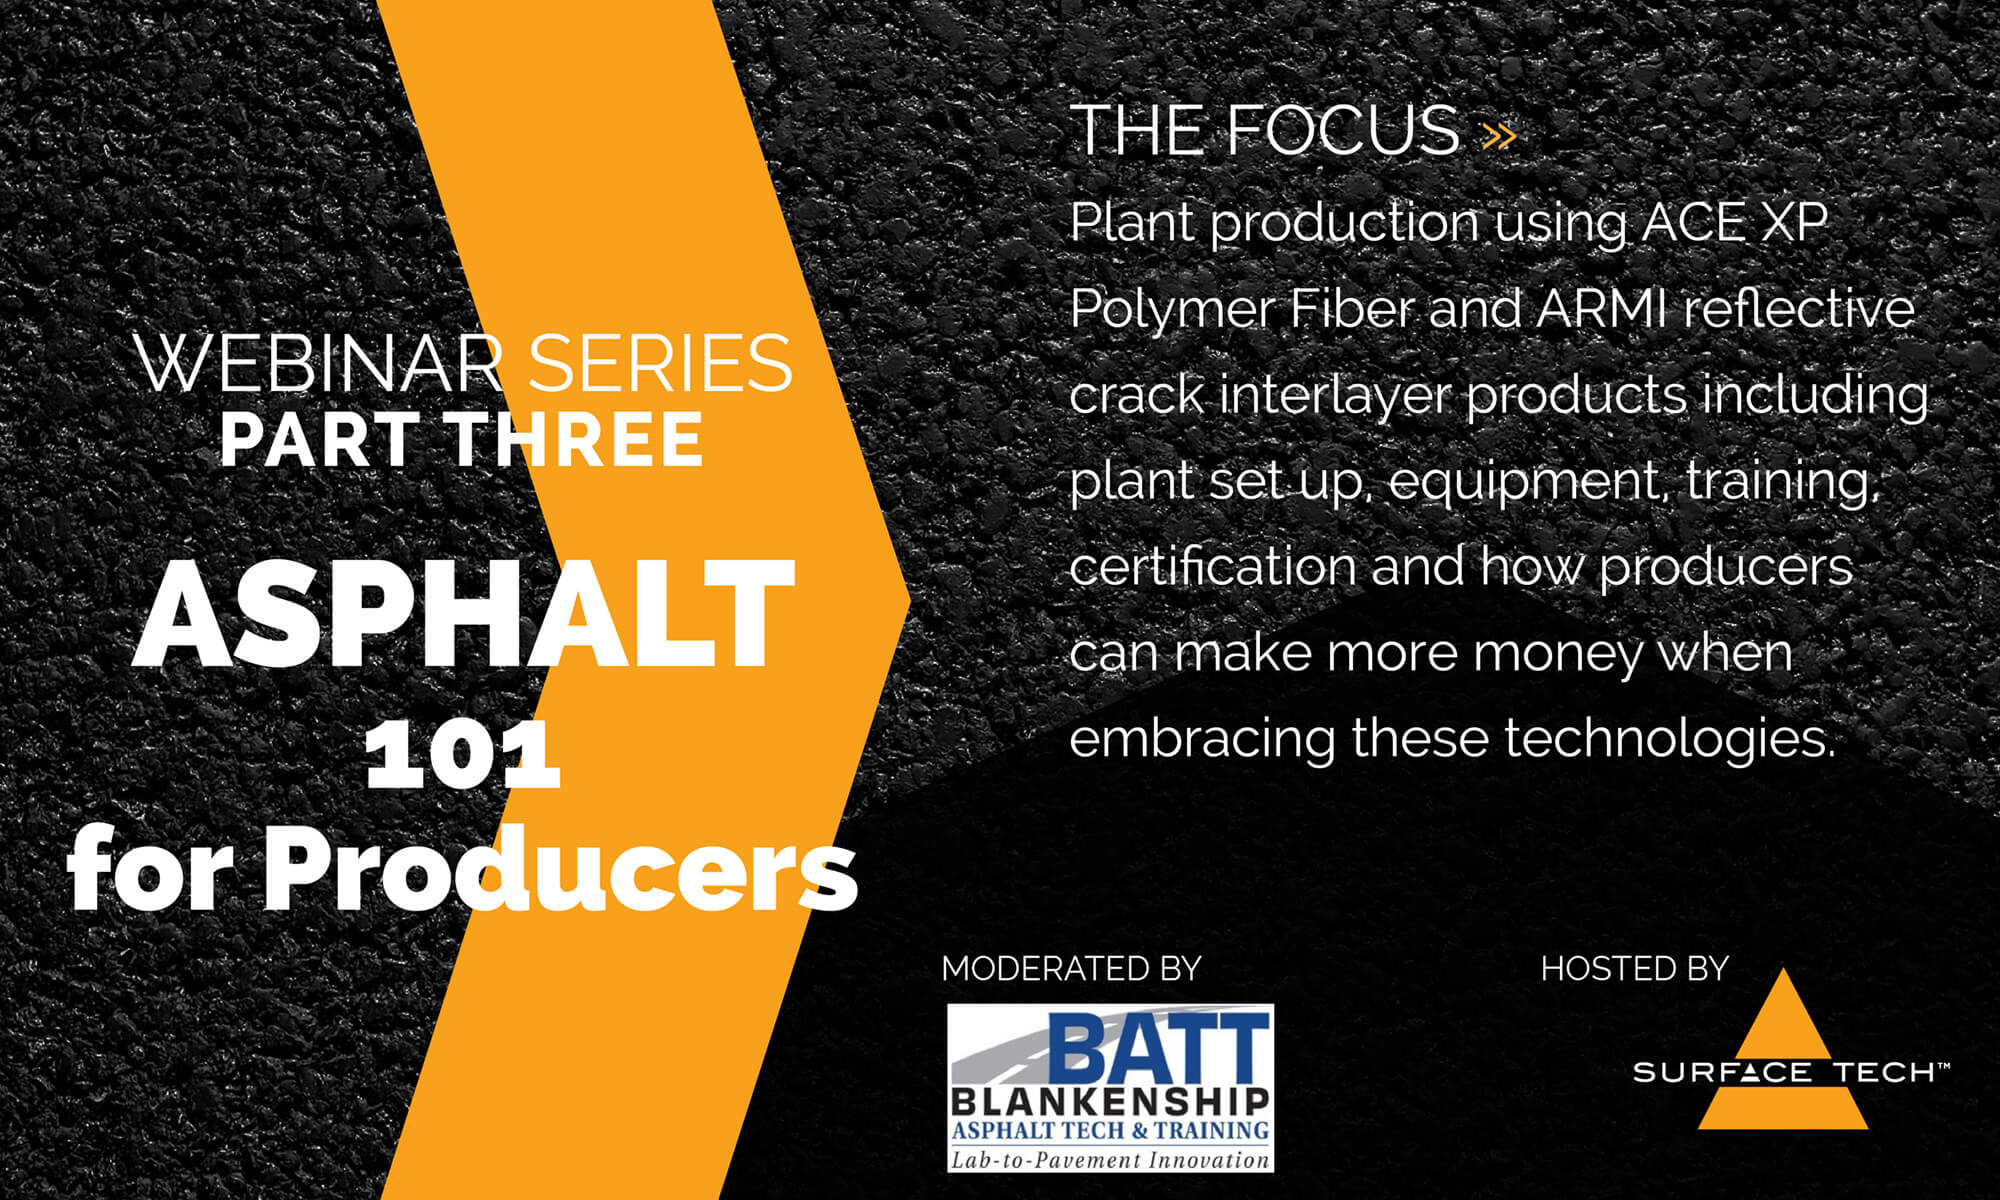 WEBINAR-2020-Asphalt-101-part3-1